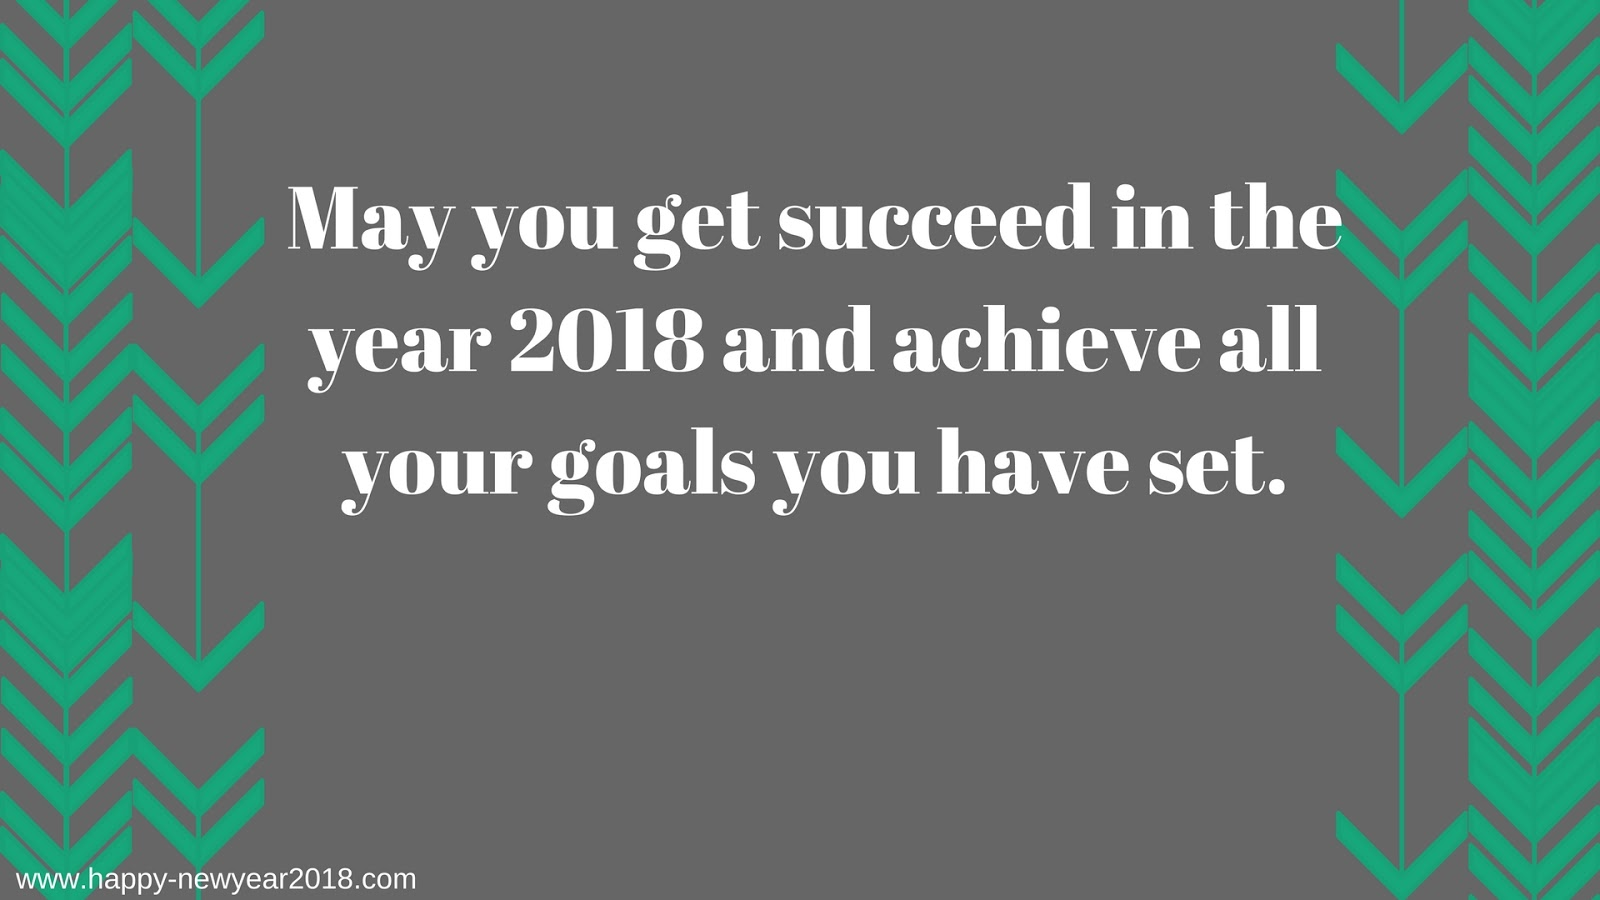 Happy New Year 2018 Images,Wishes,Quotes,Greetings,hd wallpapers